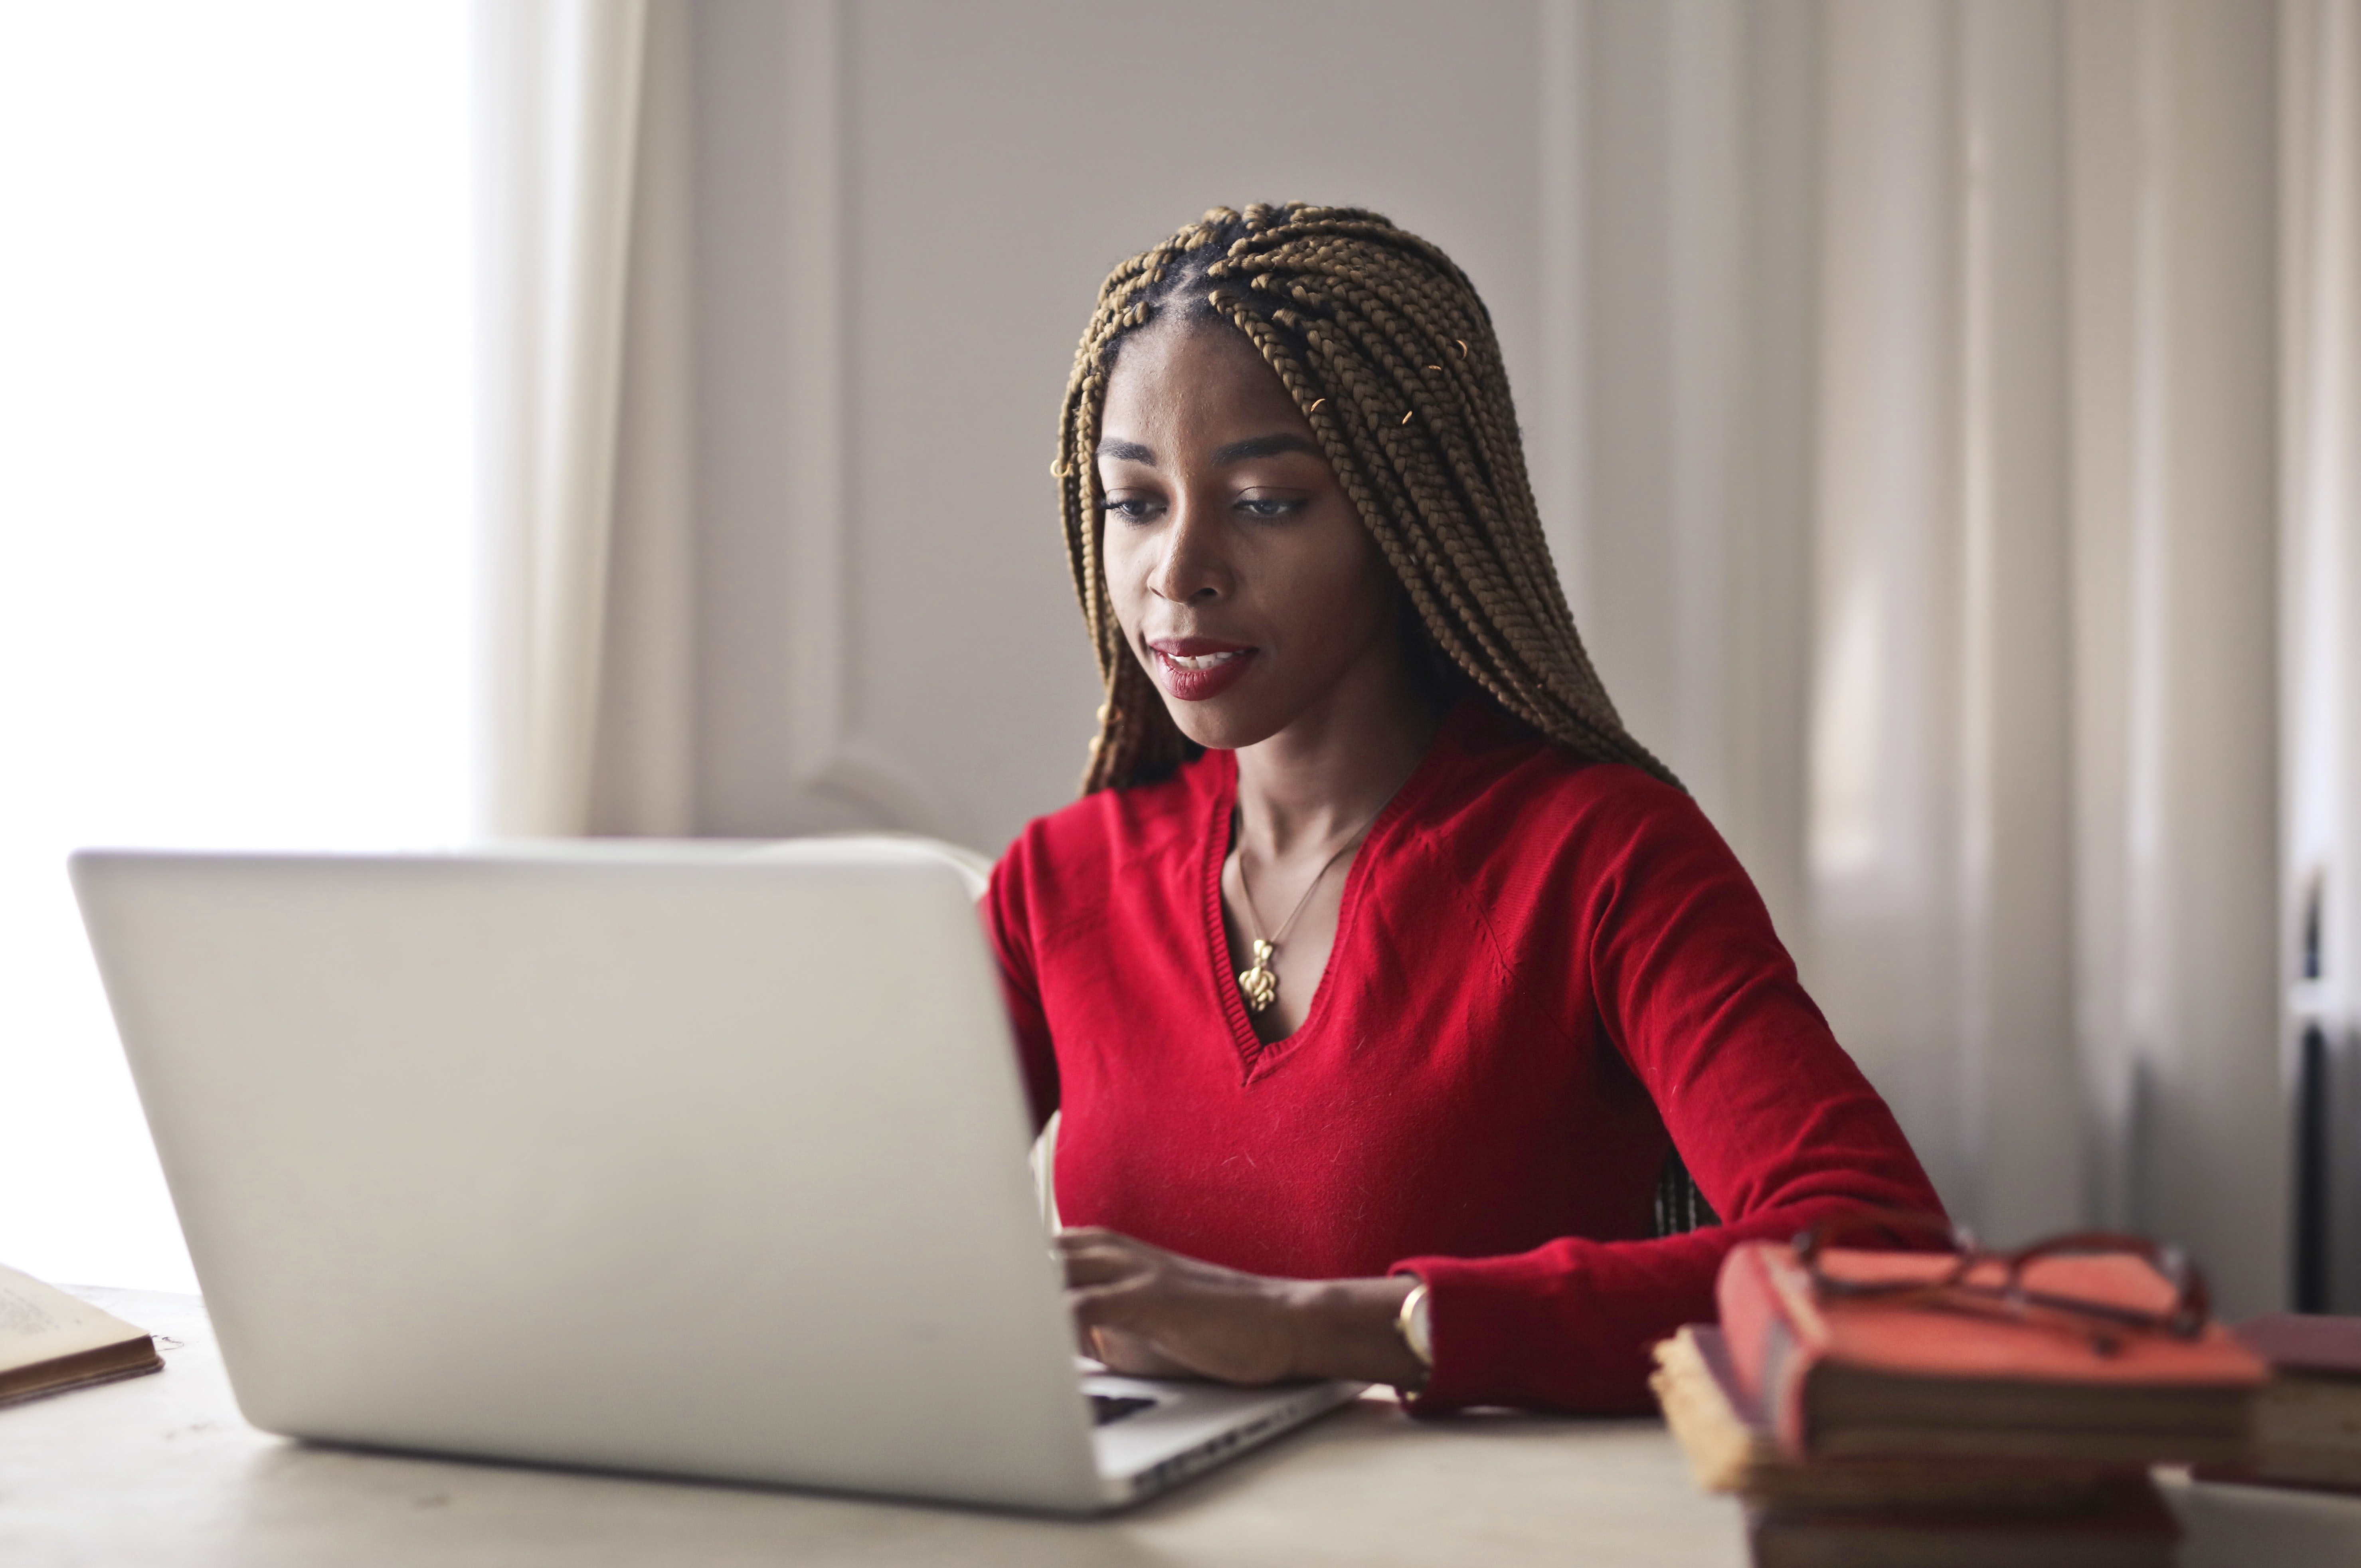 woman in red sweater using laptop, a distance learner